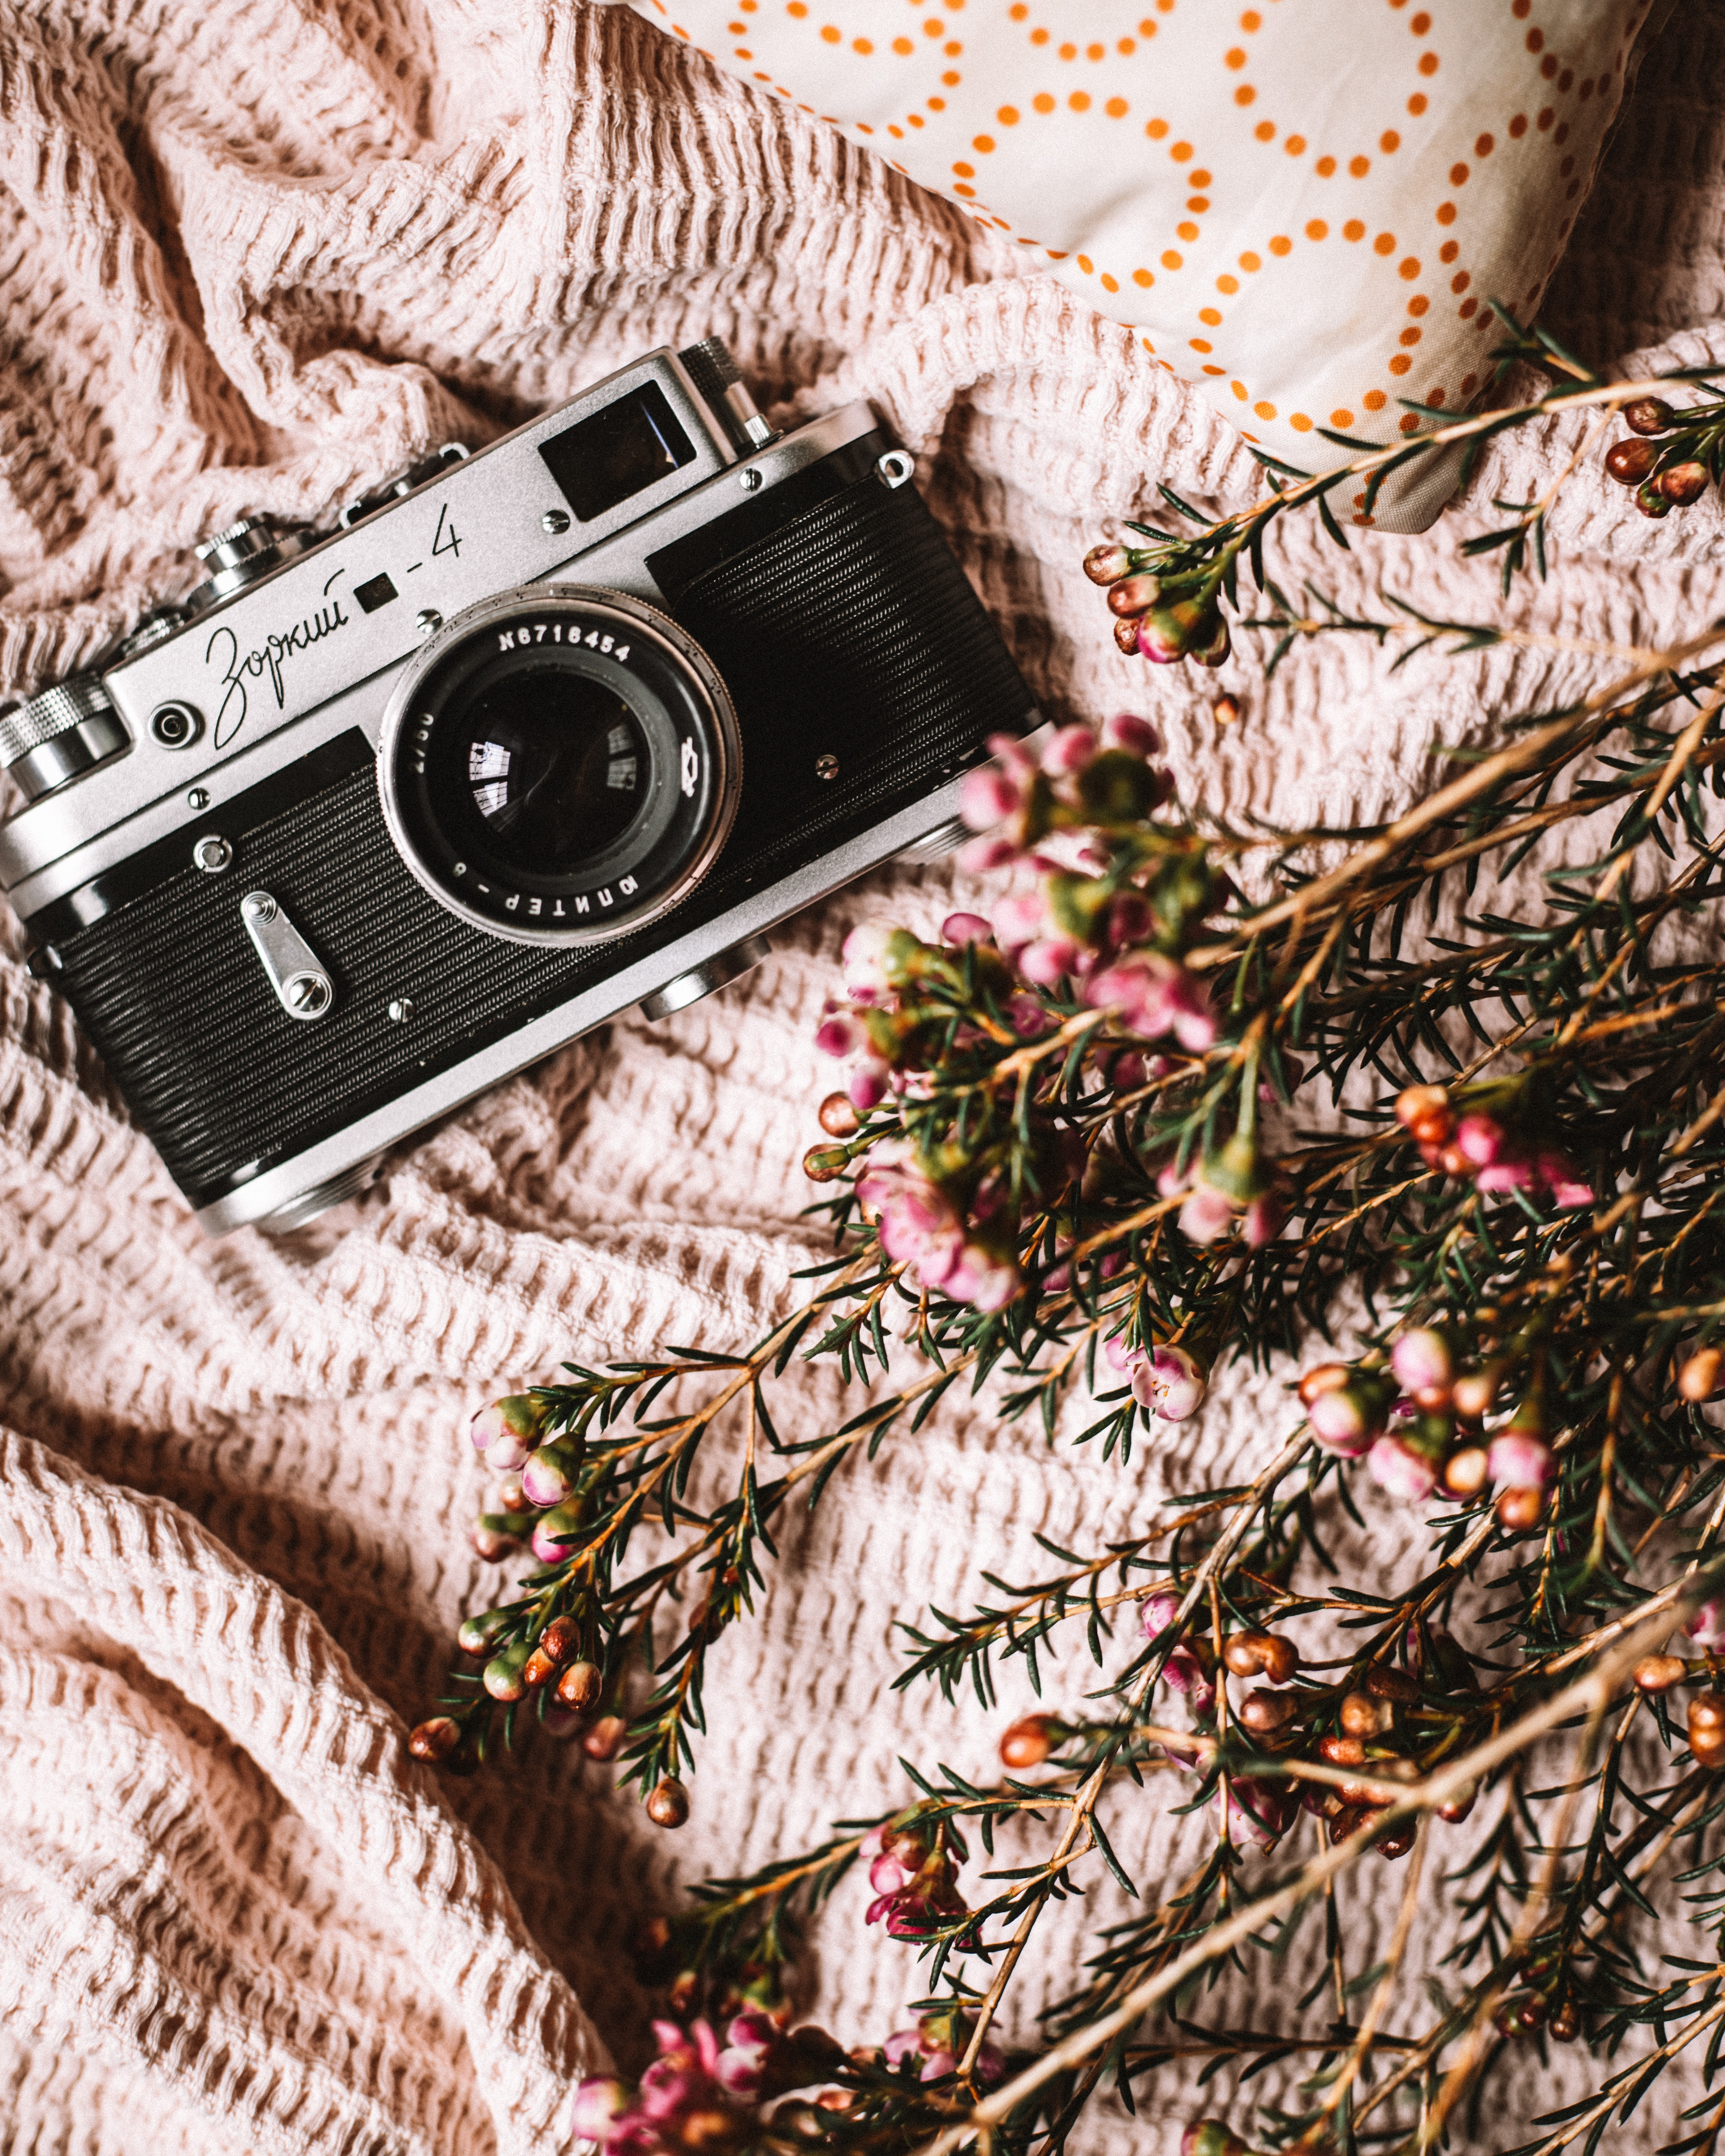 144130 Screensavers and Wallpapers Lens for phone. Download Flowers, Miscellanea, Miscellaneous, Cloth, Retro, Lens, Camera pictures for free